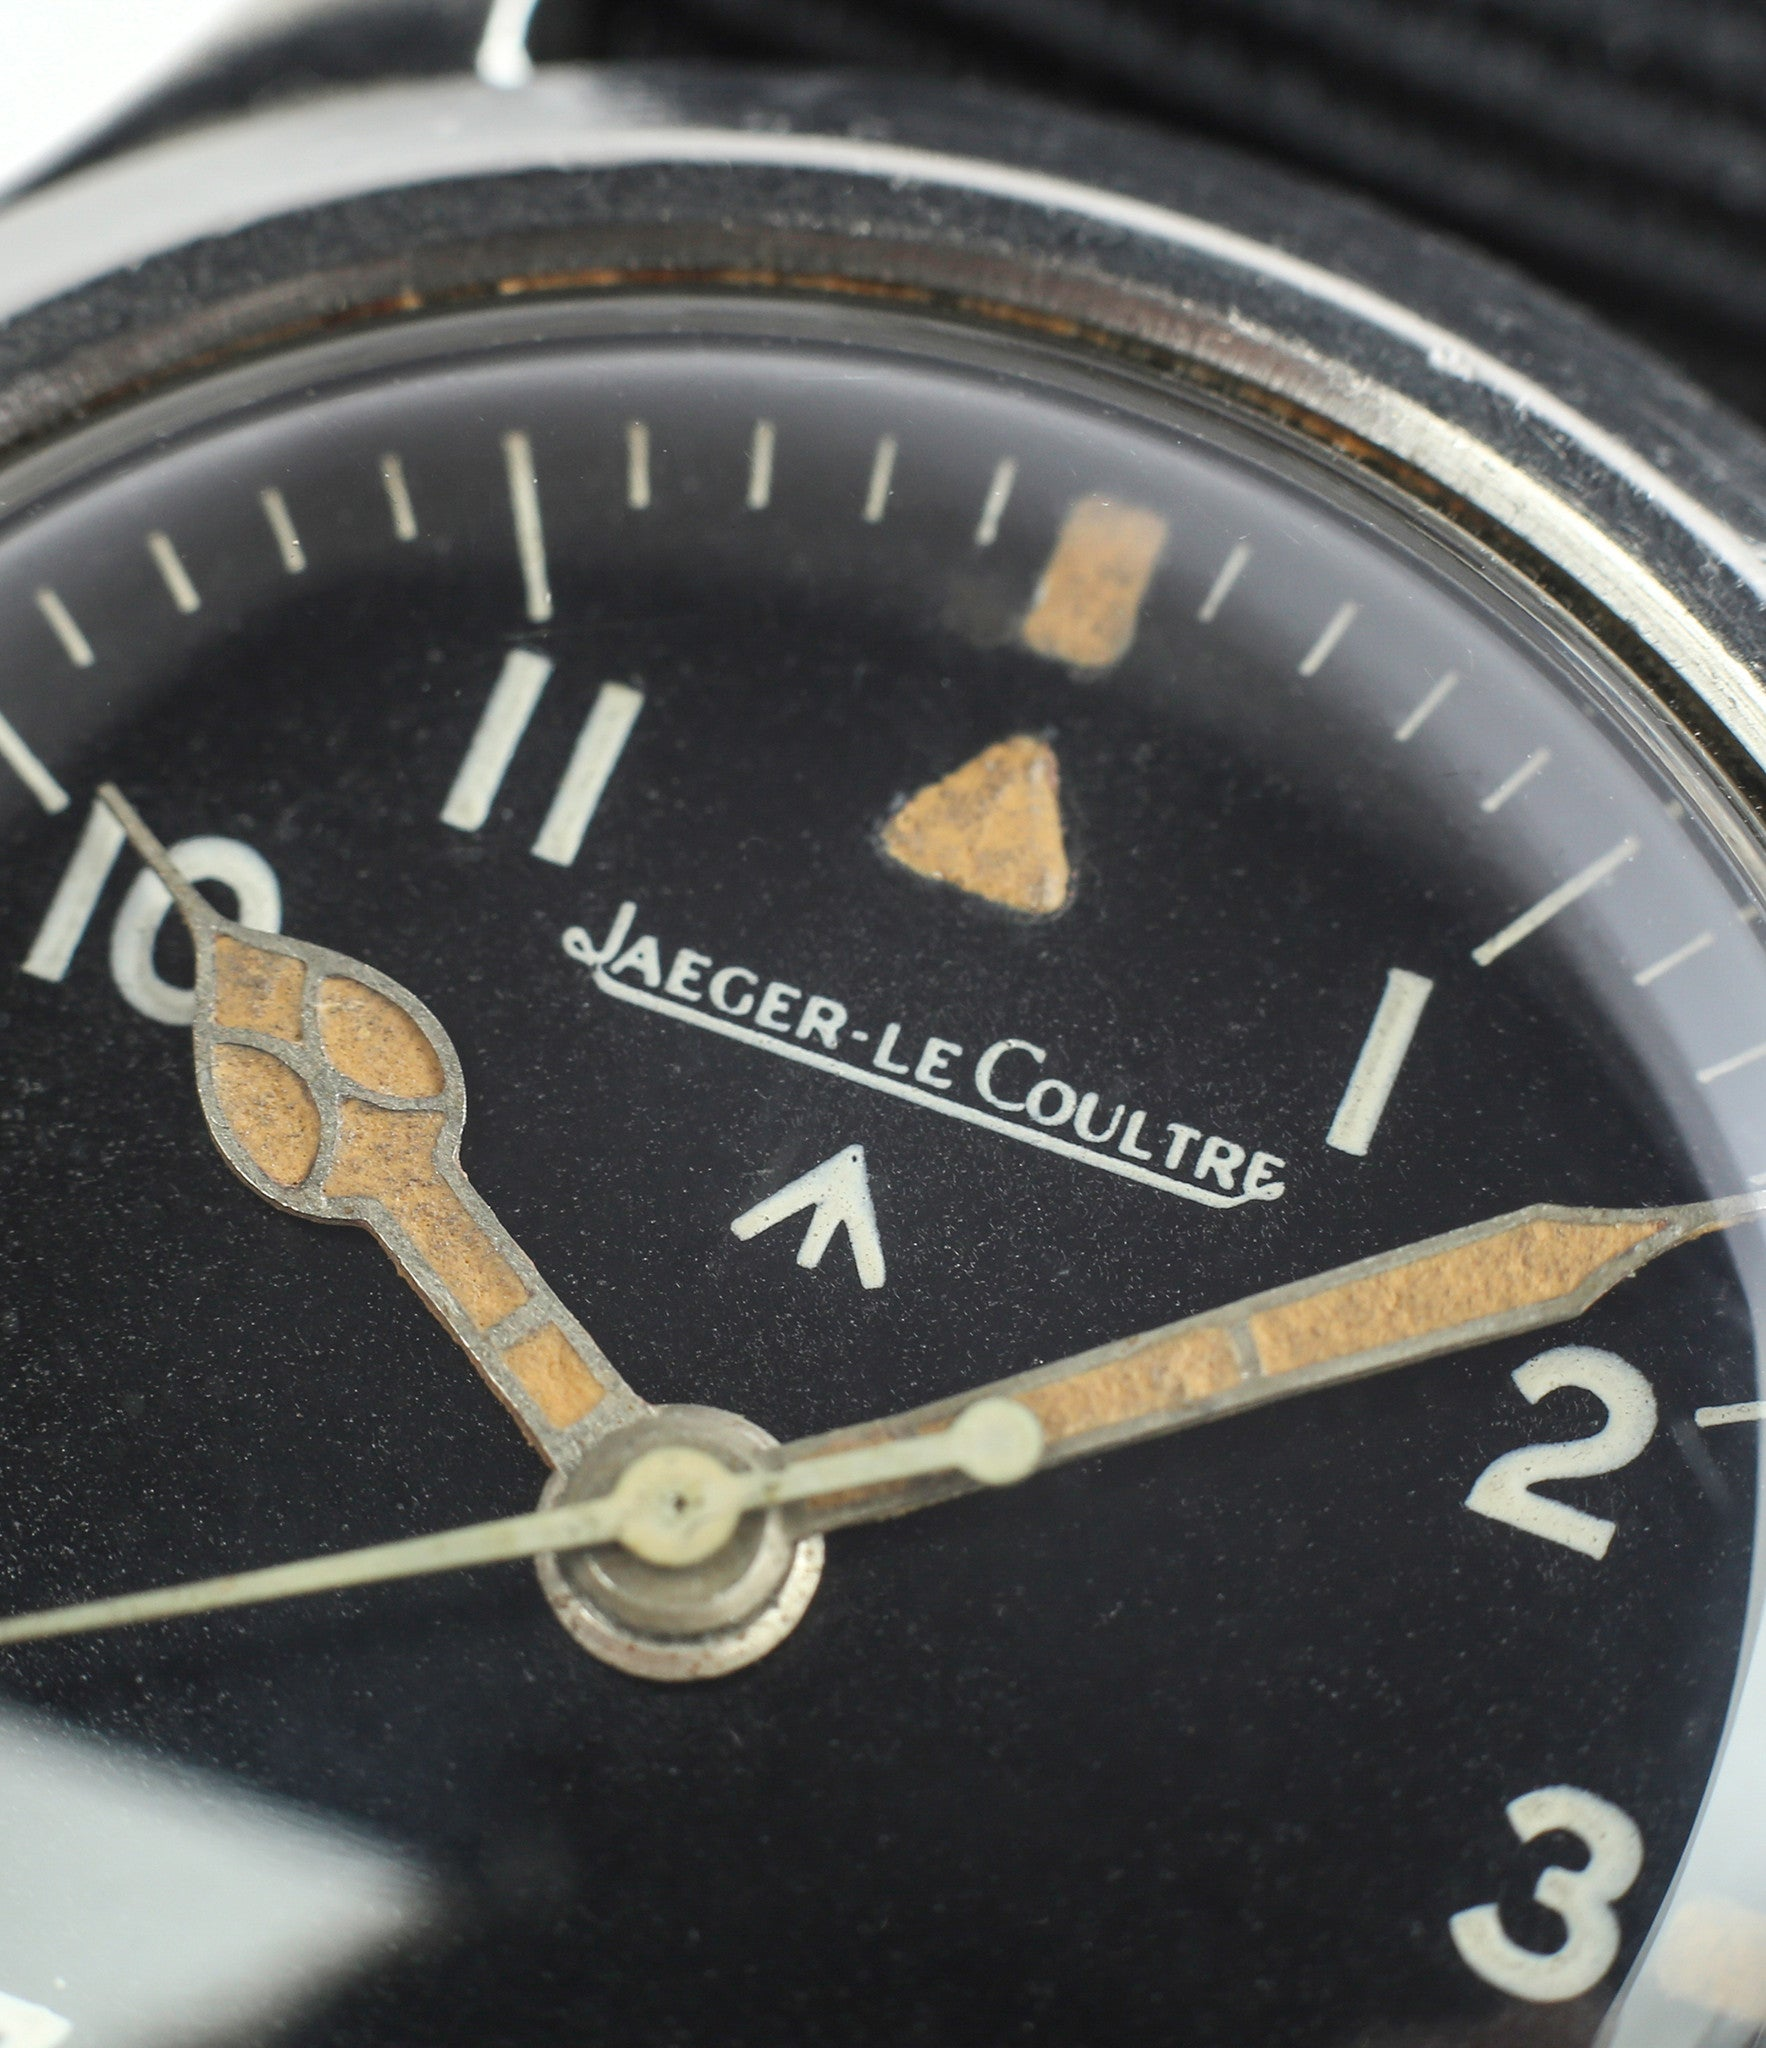 cathedral hands buy vintage Jaeger-LeCoultre Mark XI RAF military pilot watch 6B/346 unrestored dial cathedral hands at WATCH XCHANGE LONDON military watch online specialist